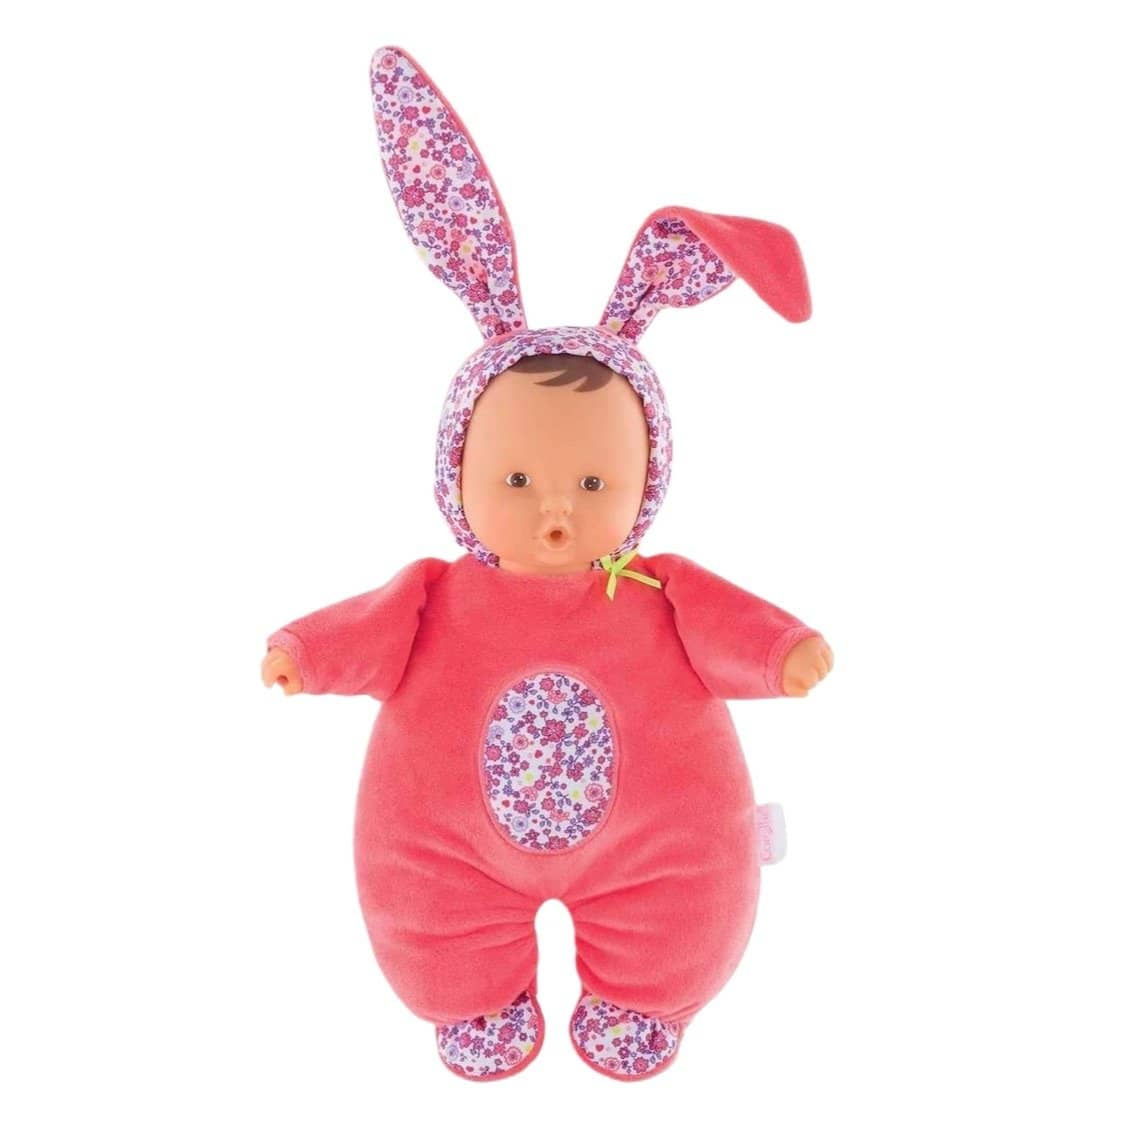 Babibunny 2-In-1 Musical Baby Doll & Nightlight - Corolle Mon Doudou - Floral Bloom-Kidding Around NYC